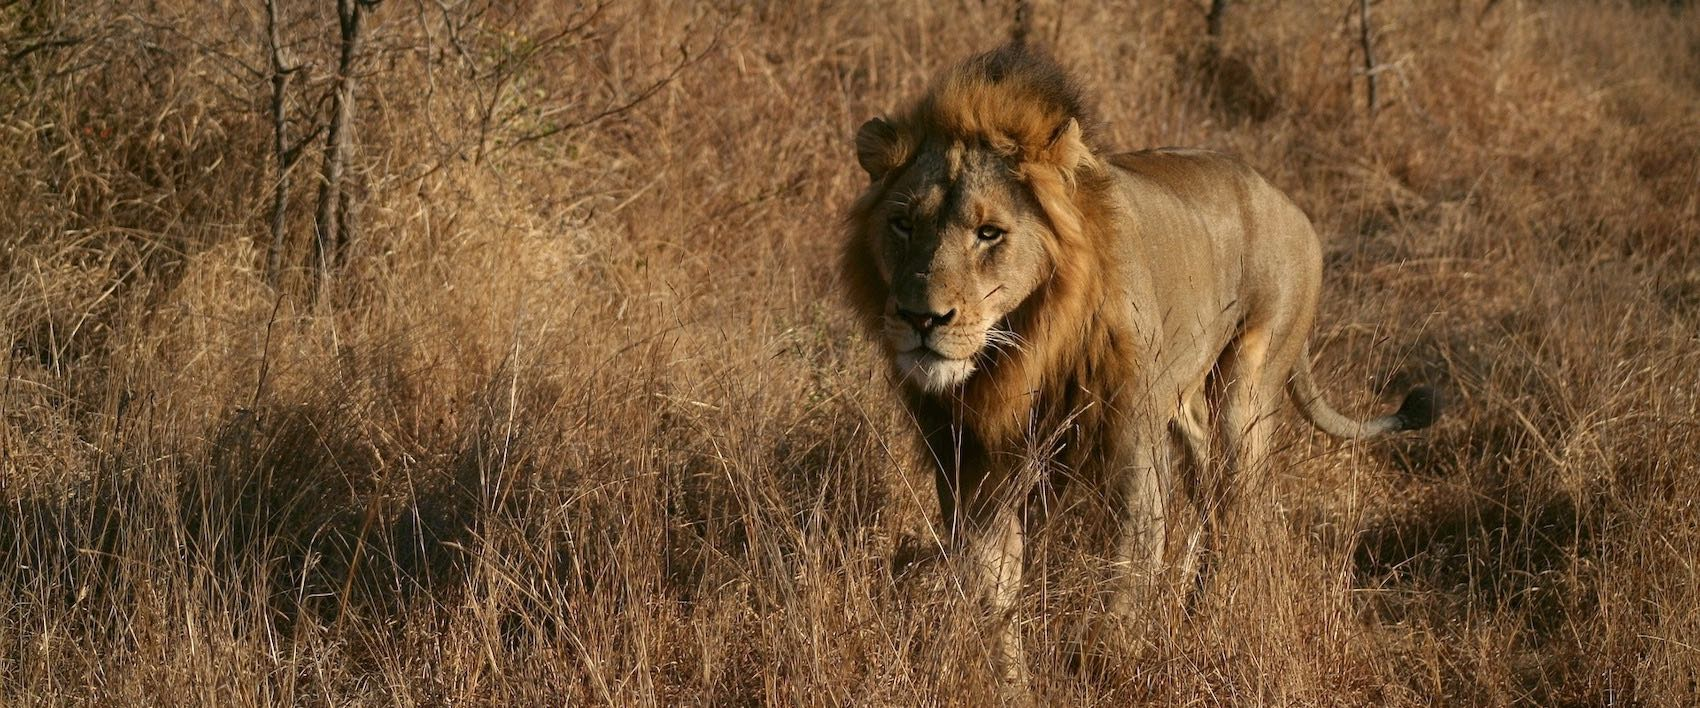 Lion male qui fuit dans la savane